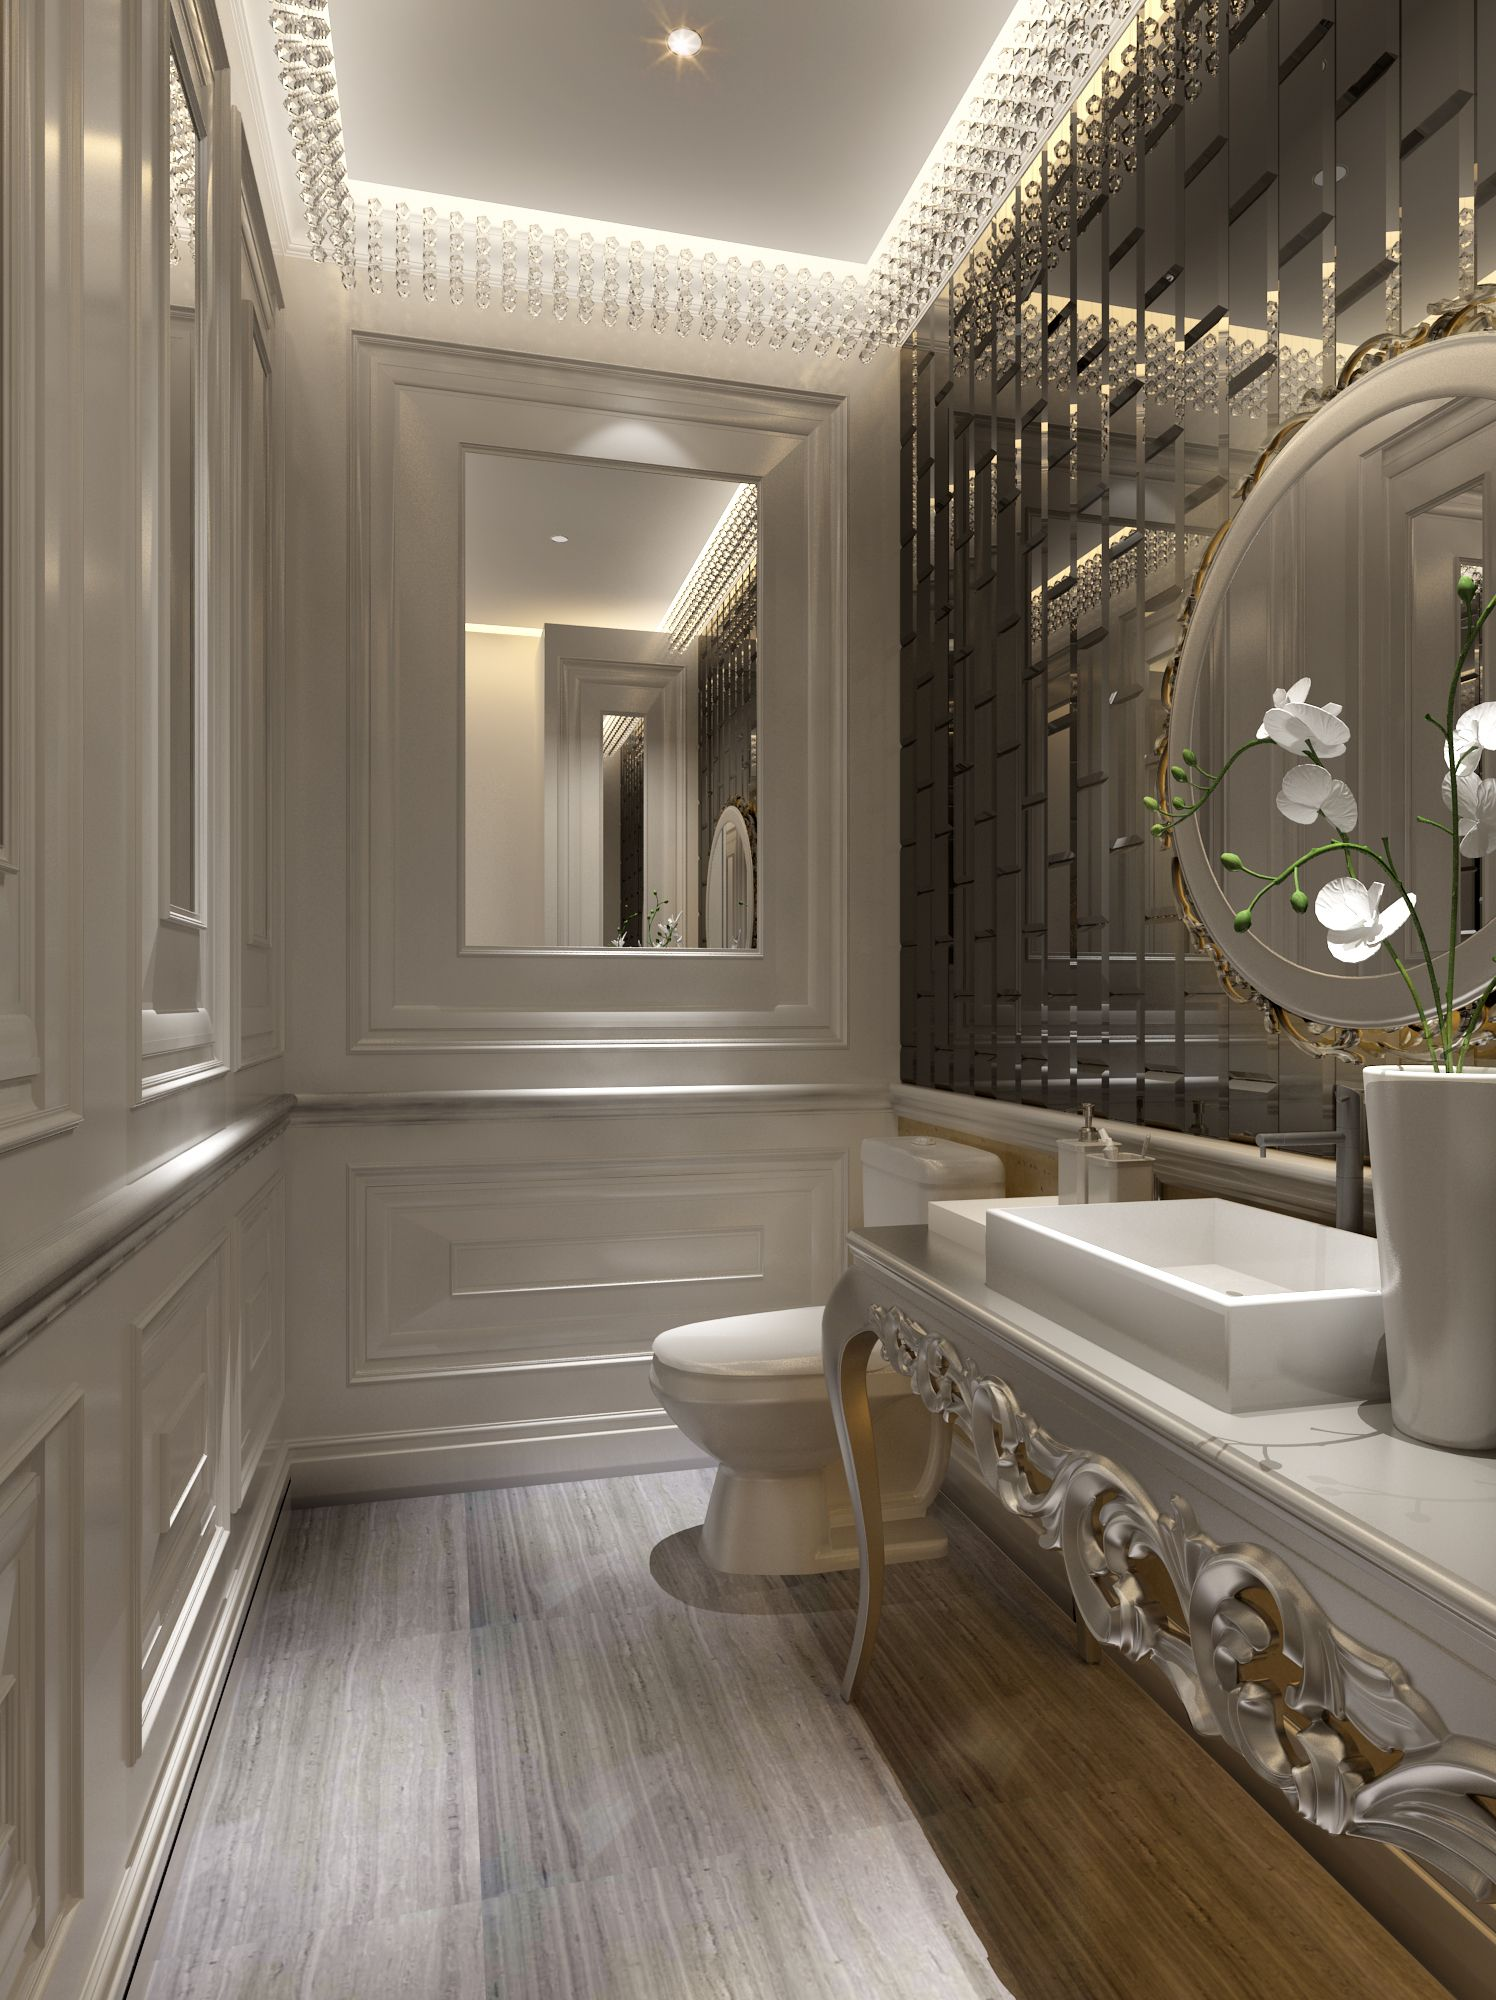 30 Bathroom Sets Design Ideas With Images Small Luxury Bathrooms